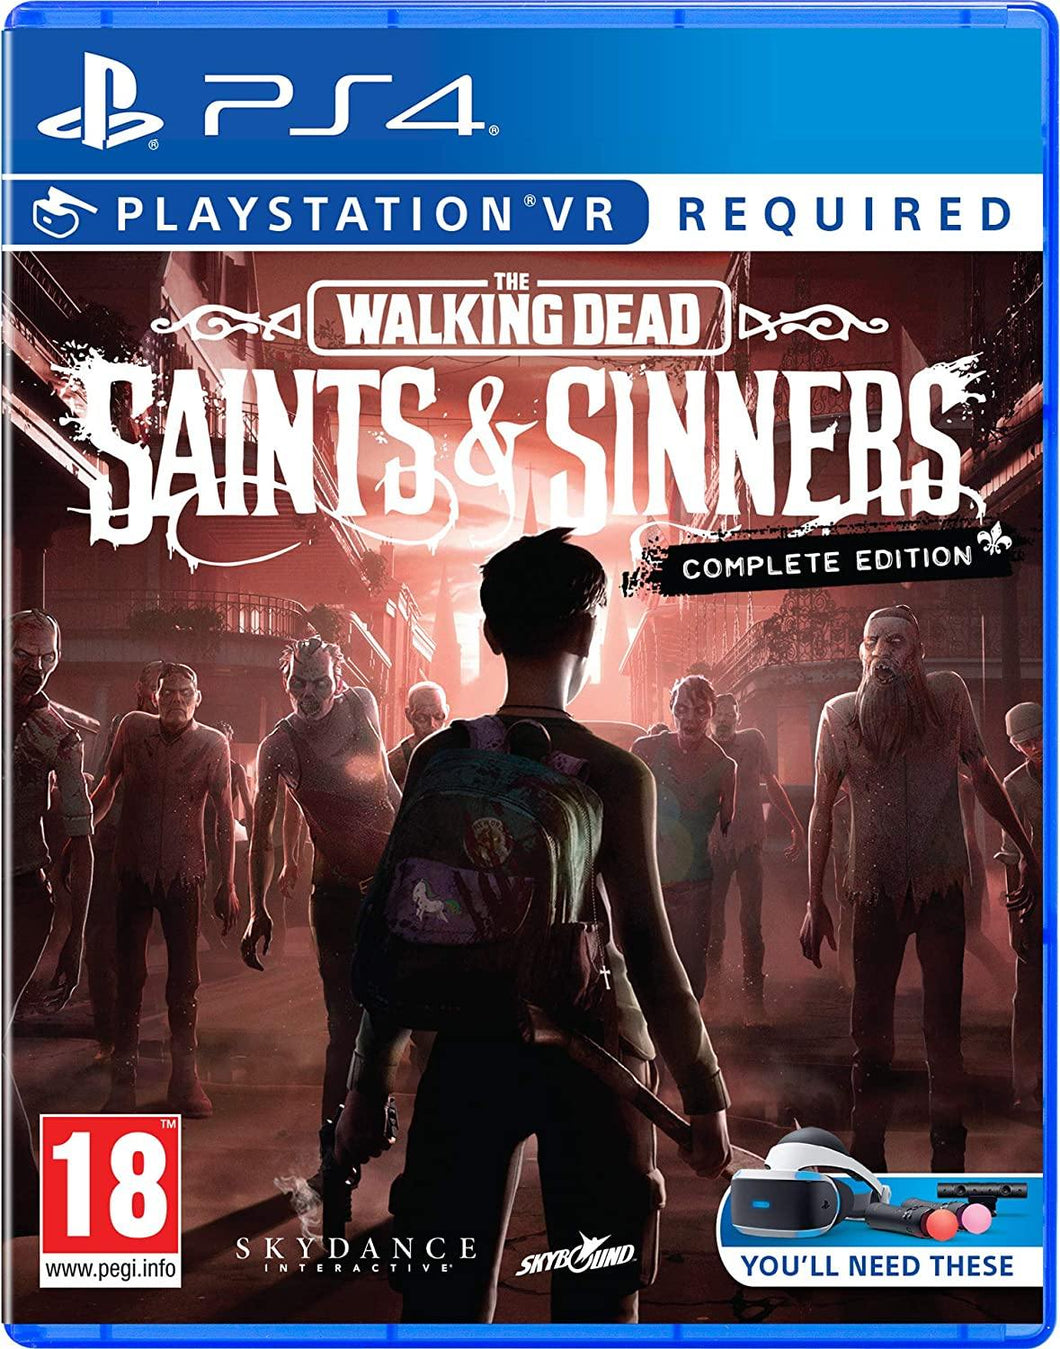 The Walking Dead Saints & Sinners The Complete Edition PS